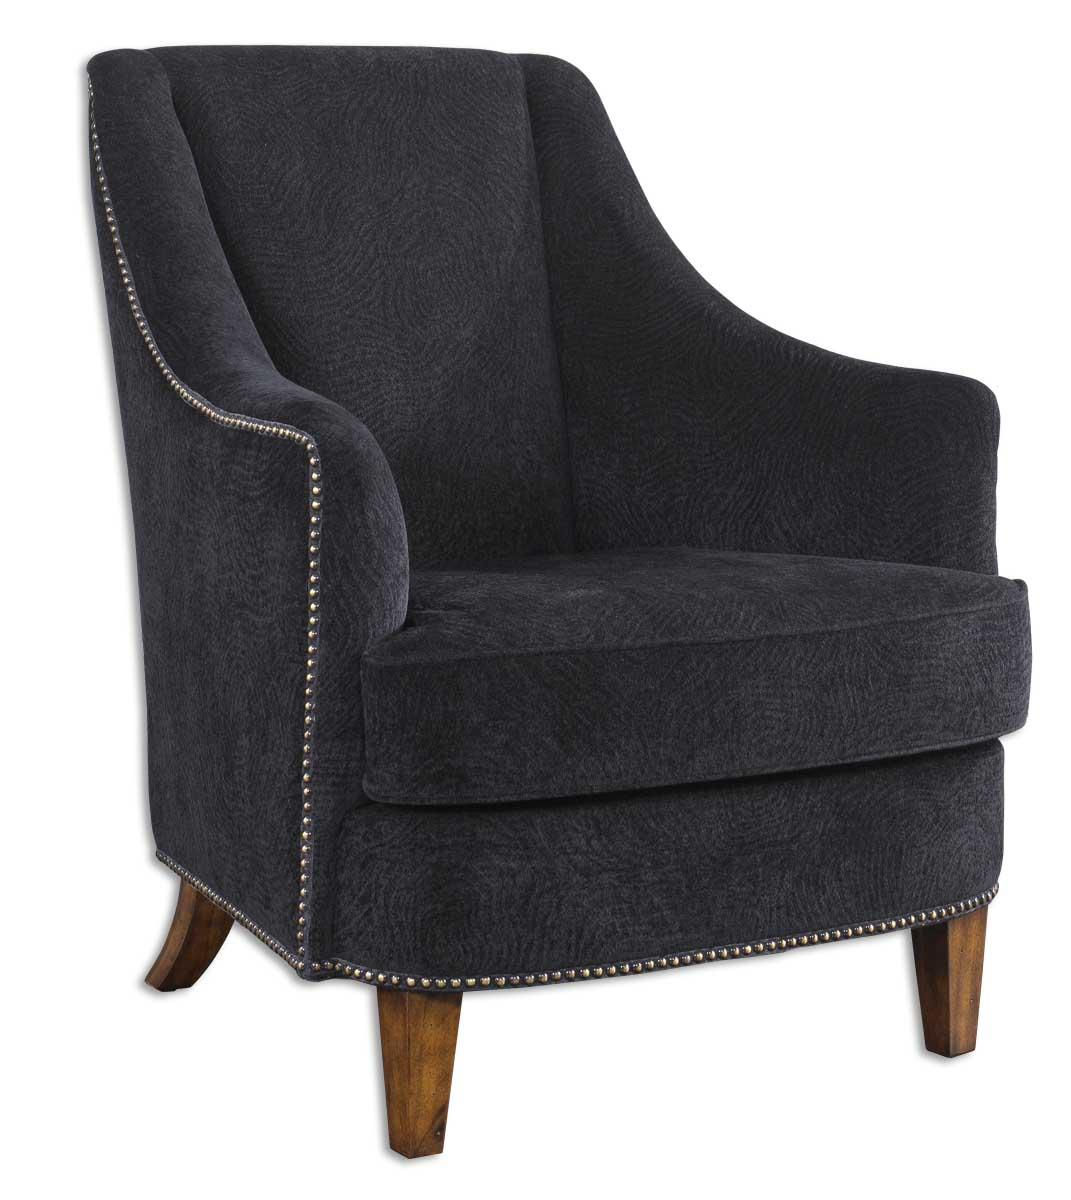 Uttermost Accent Furniture Nala Armchair - Item Number: 23002